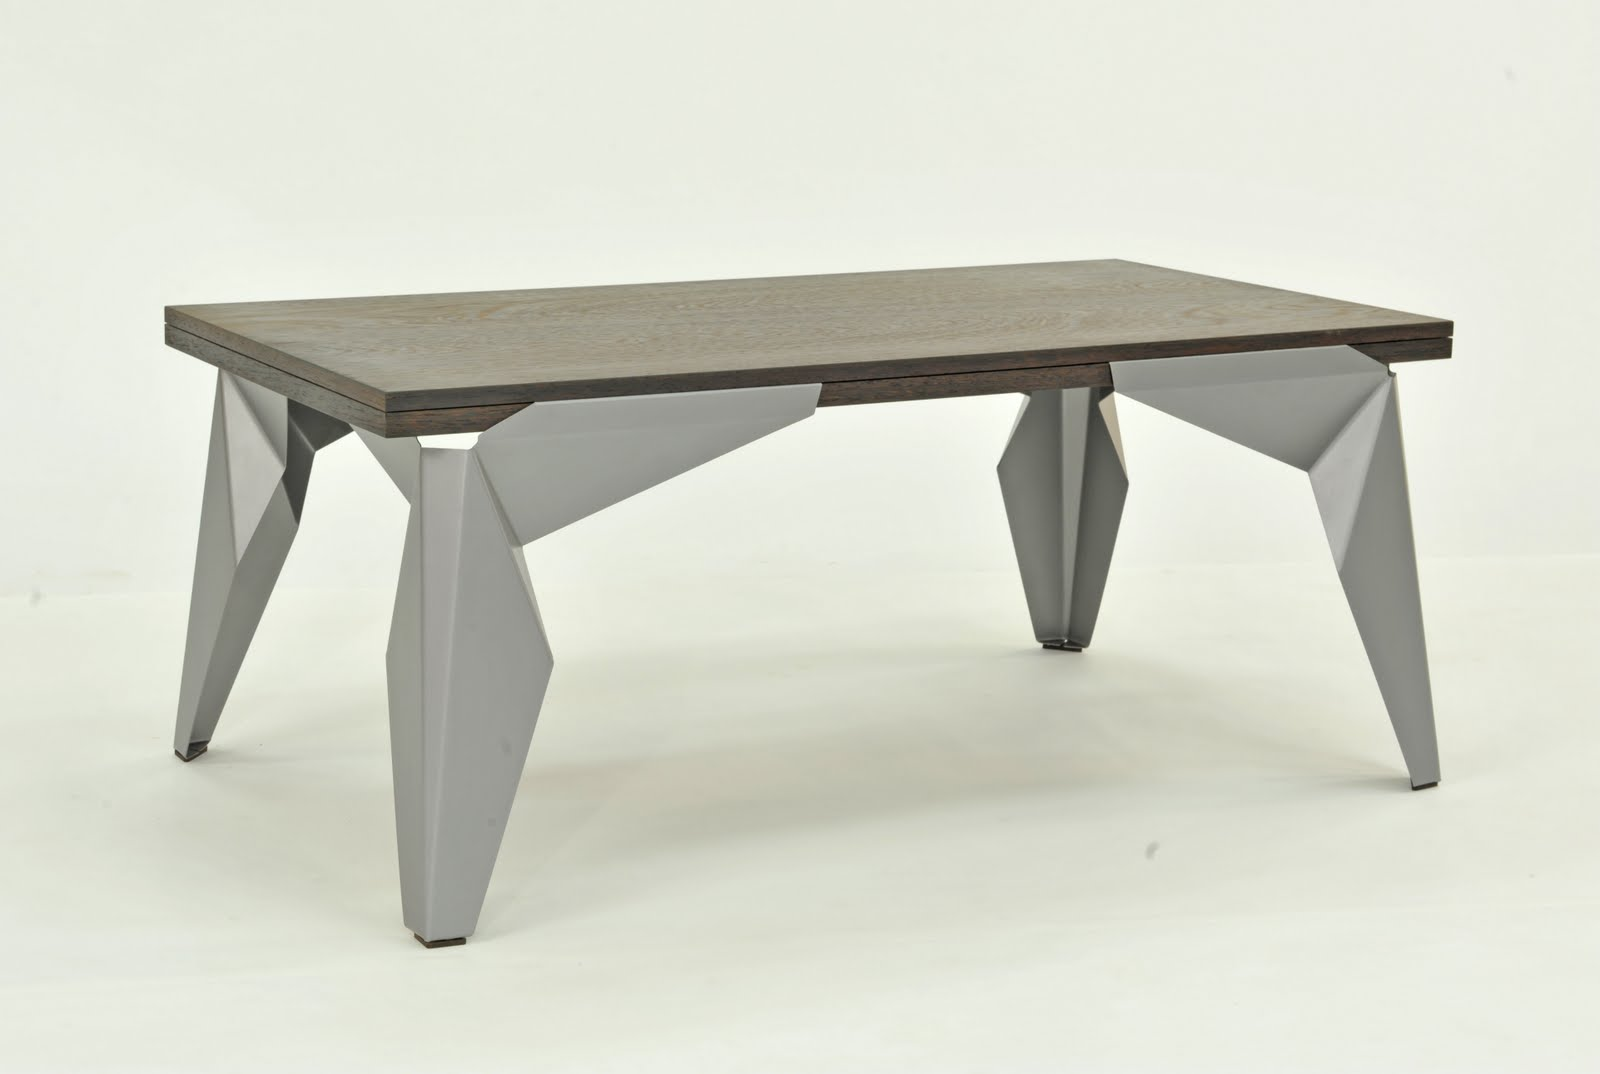 Picture of: Wood Table with Metal Legs Design